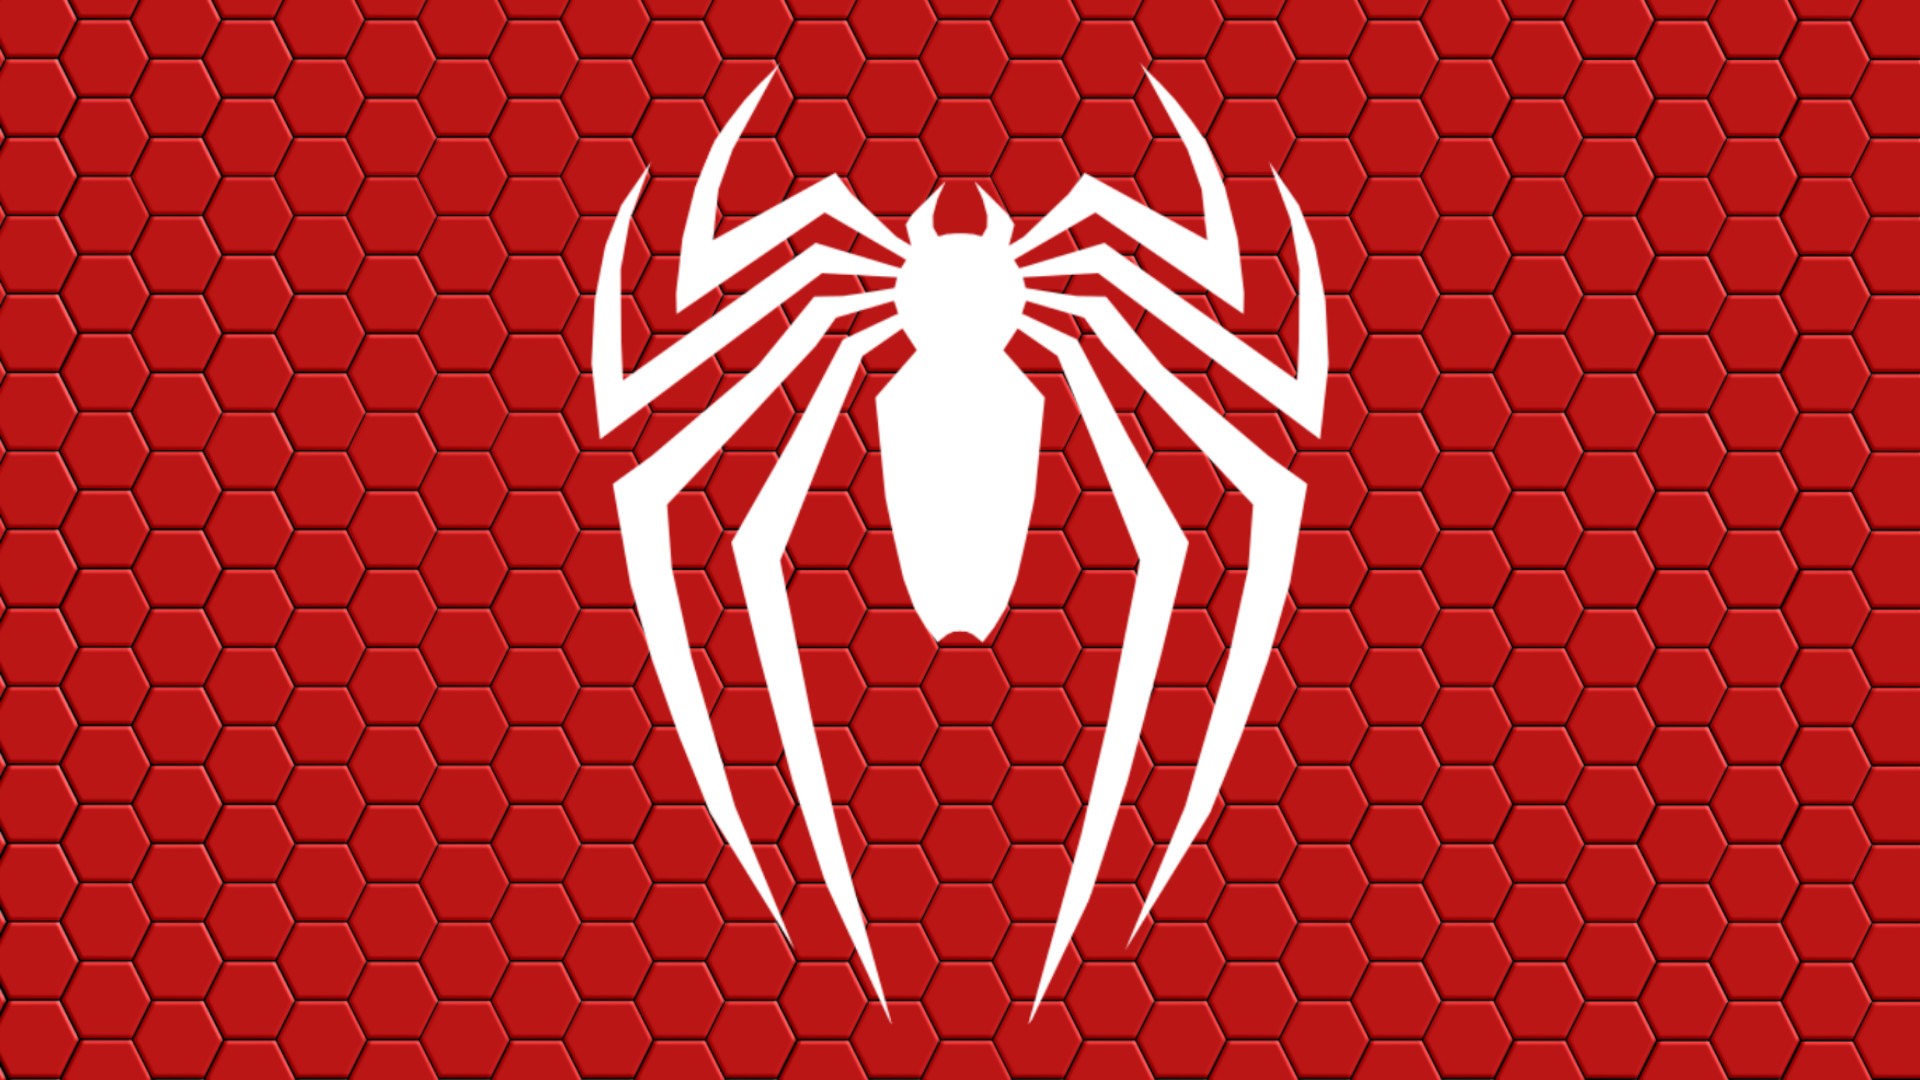 Res: 1920x1080, Spider-Man PS4 New Logo Wallpaper